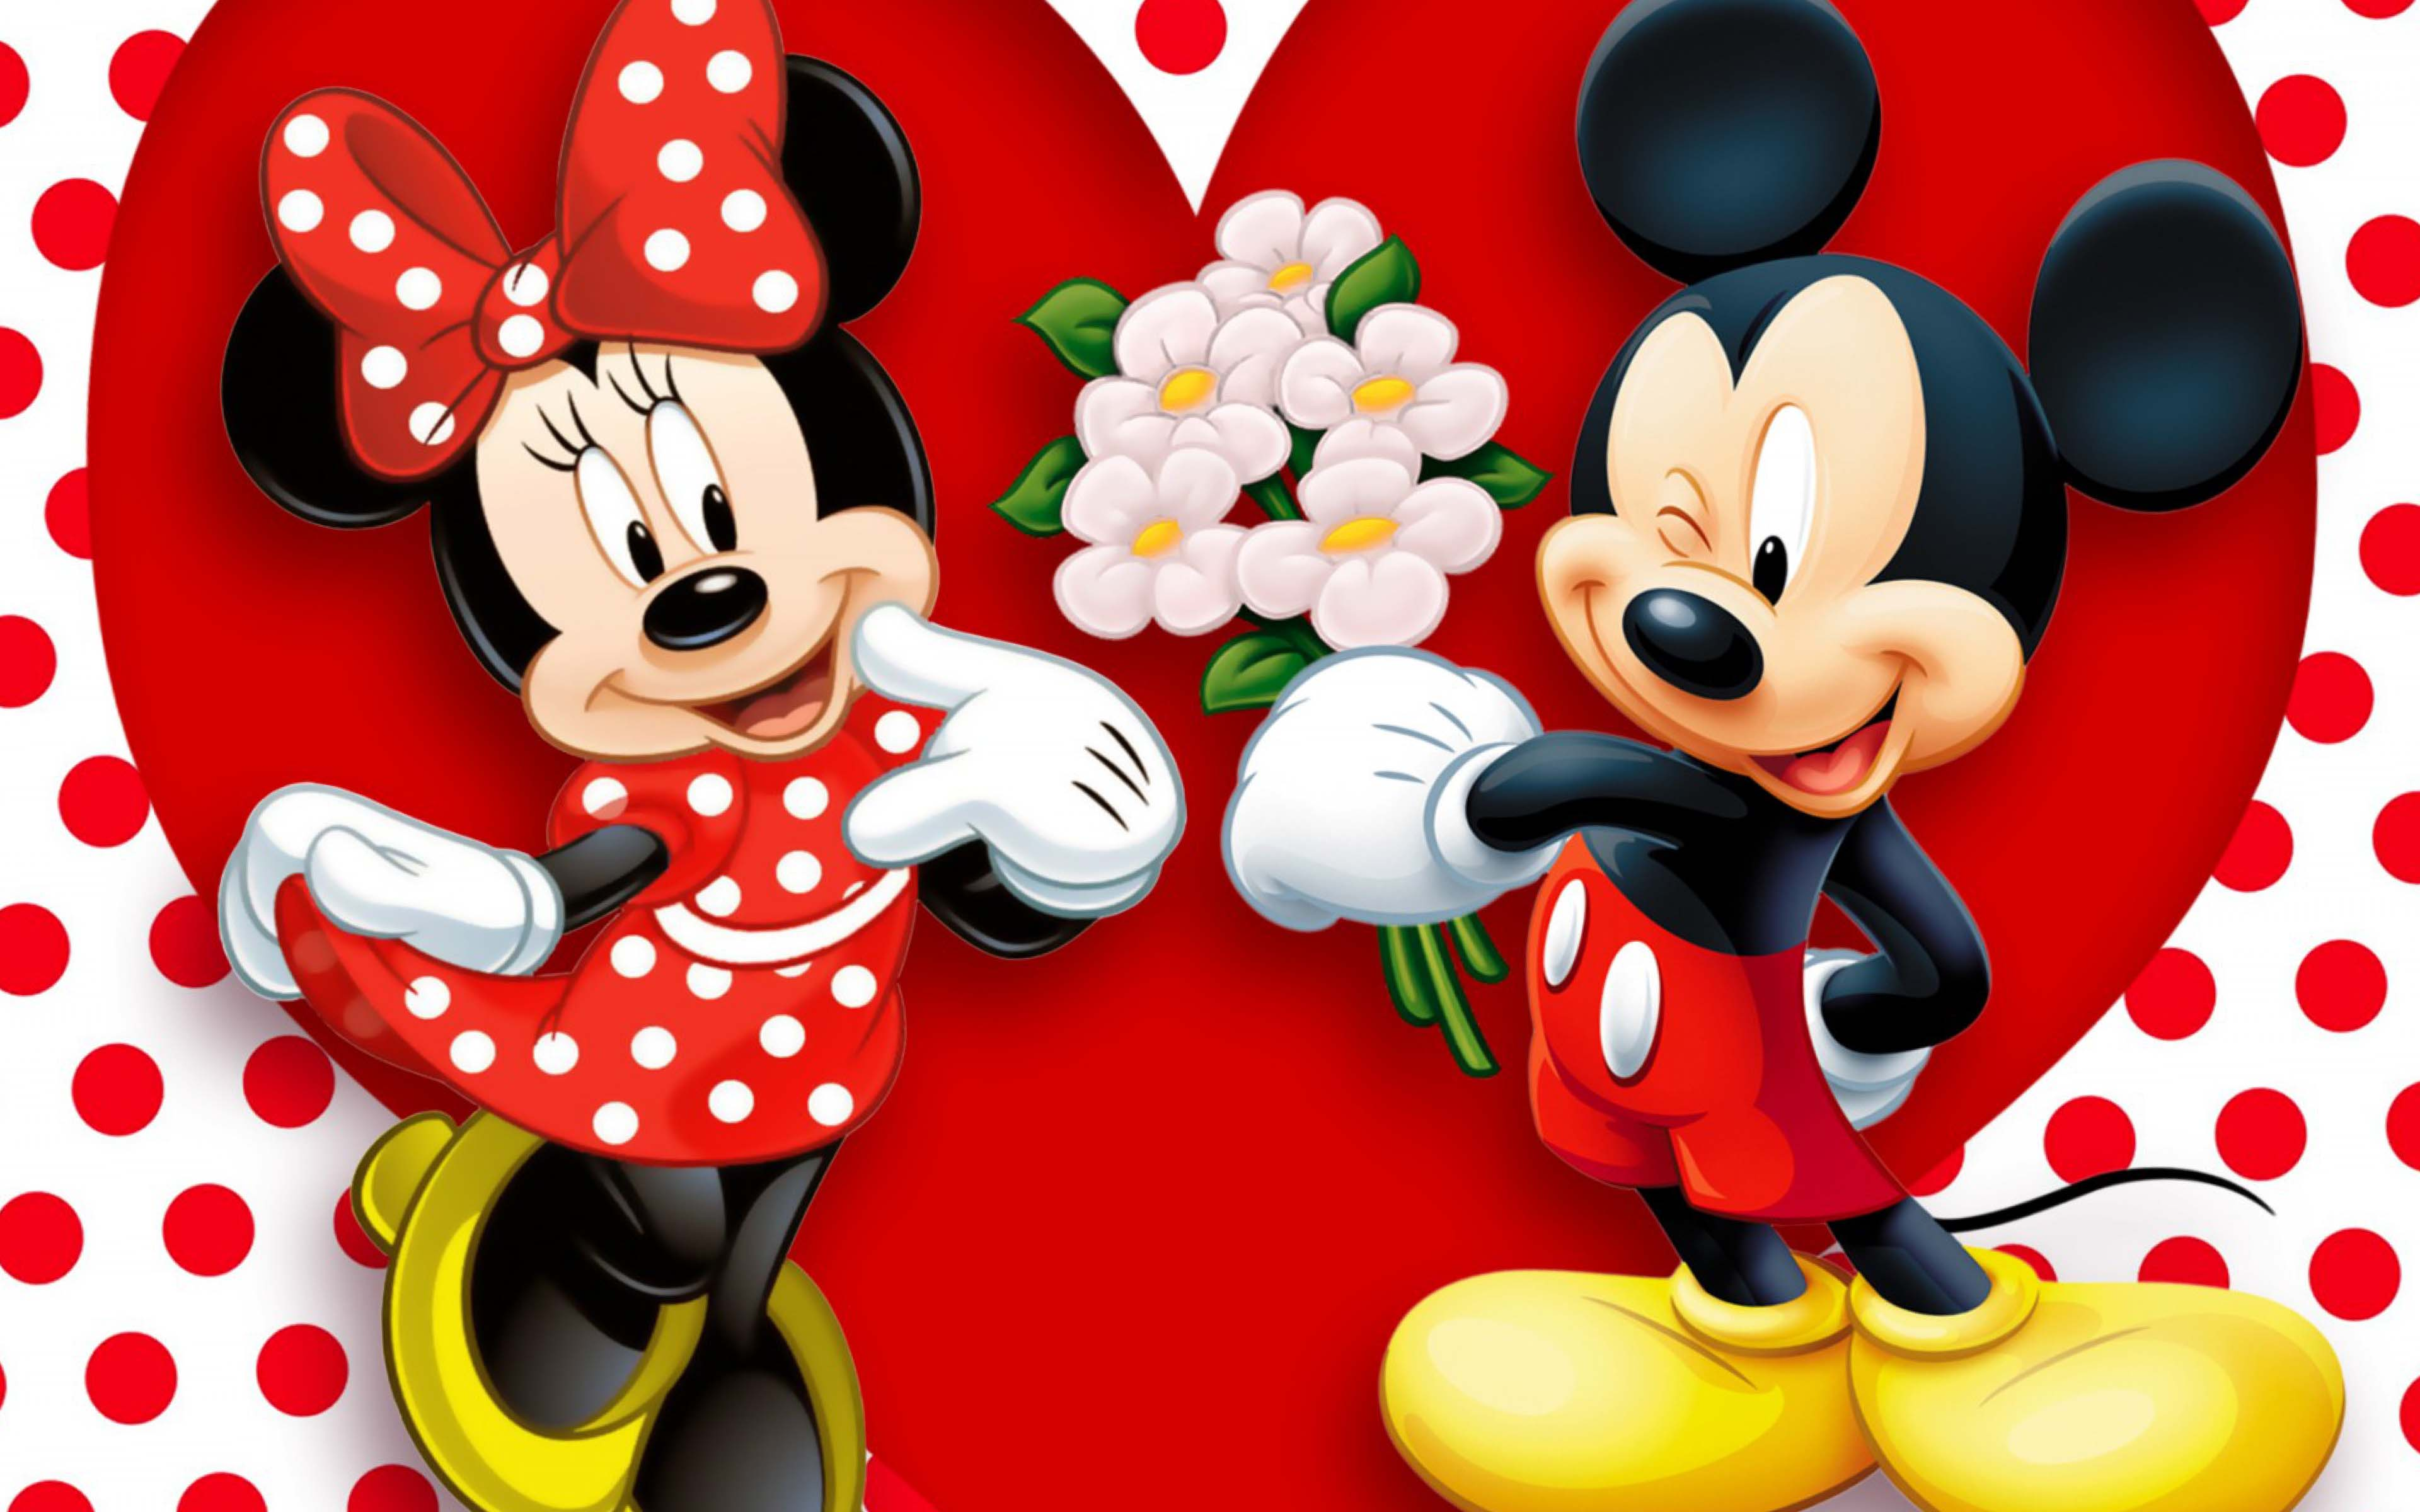 download mickey mouse love wallpaper gallery. Black Bedroom Furniture Sets. Home Design Ideas